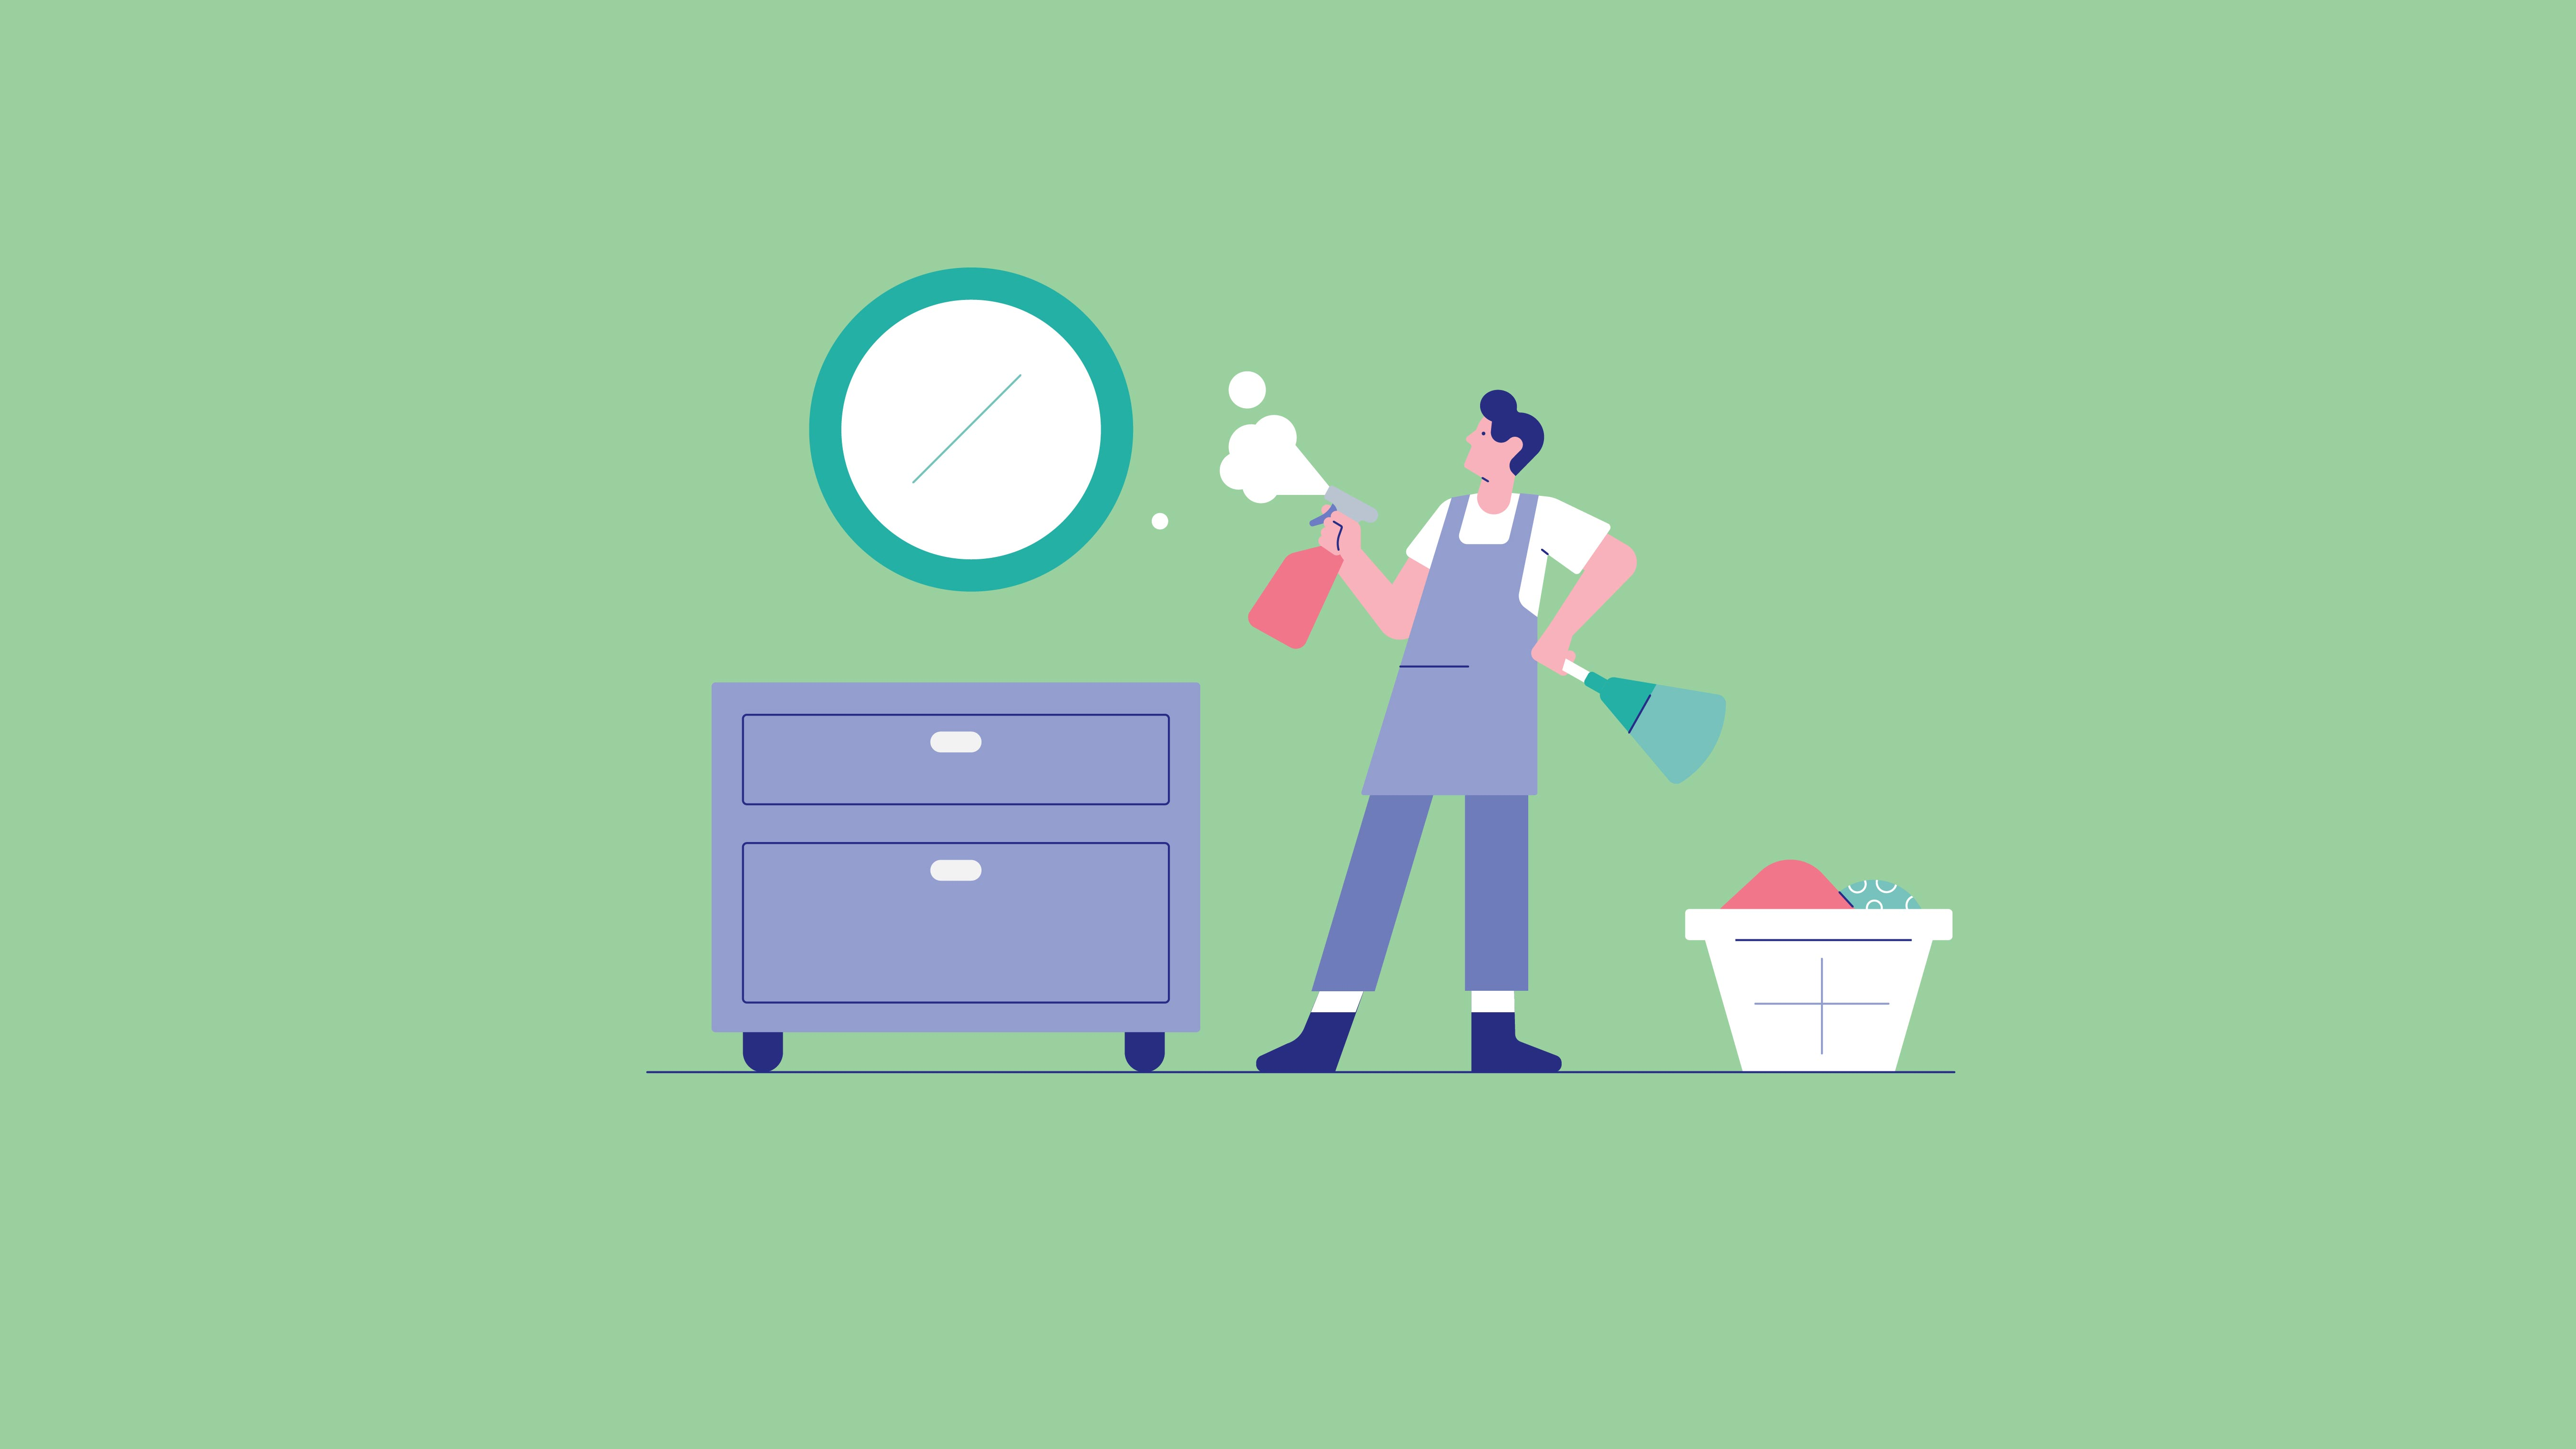 Illustration showing a man cleaning a mirror that sits above a dresser. There is a laundry basket next to him. Visual is depicting cleaning your overall space to create a more productive feeling environment.